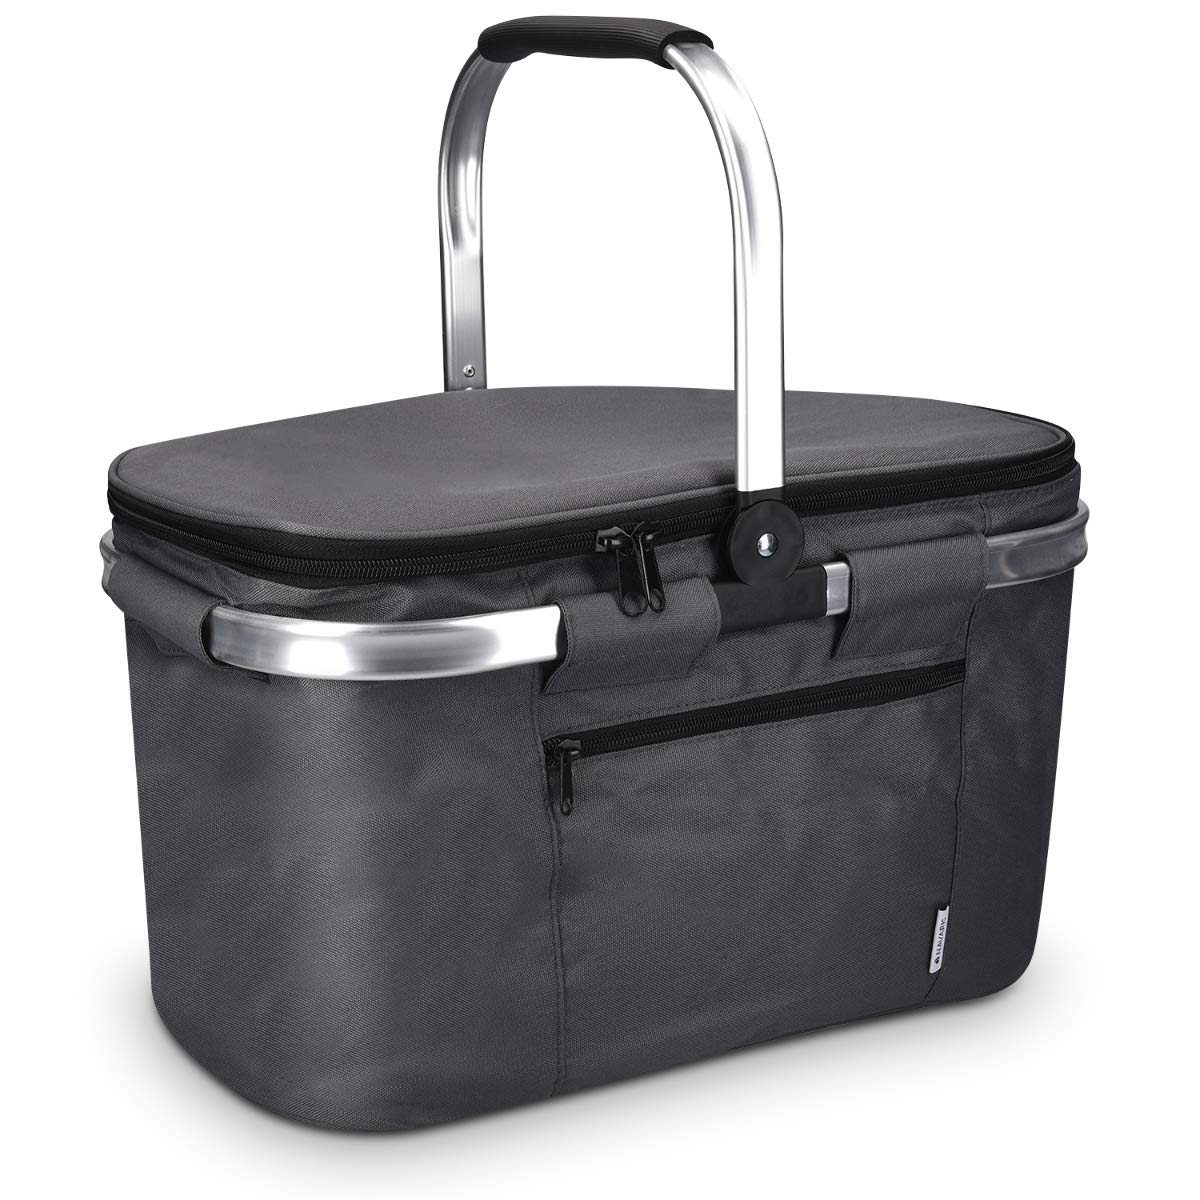 Travel Navaris Insulated Picnic Basket Bag Cool Storage for Food Drinks 27L Collapsible Cooler with Folding Handle Shopping Camping Gray